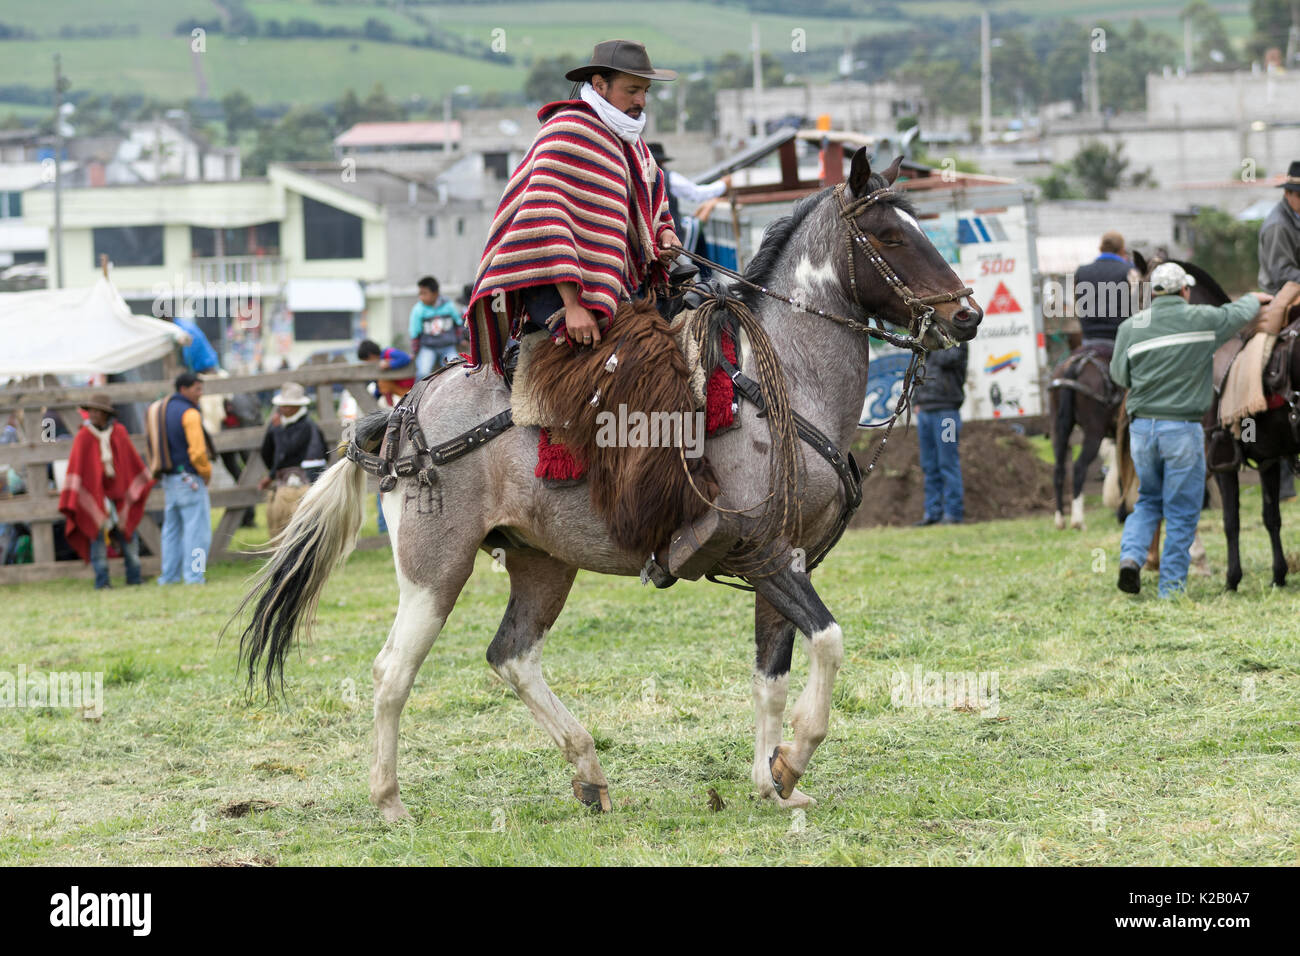 June 3, 2017 Machachi, Ecuador: cowboy wearing furry chaps and  traditional striped poncho on horseback - Stock Image